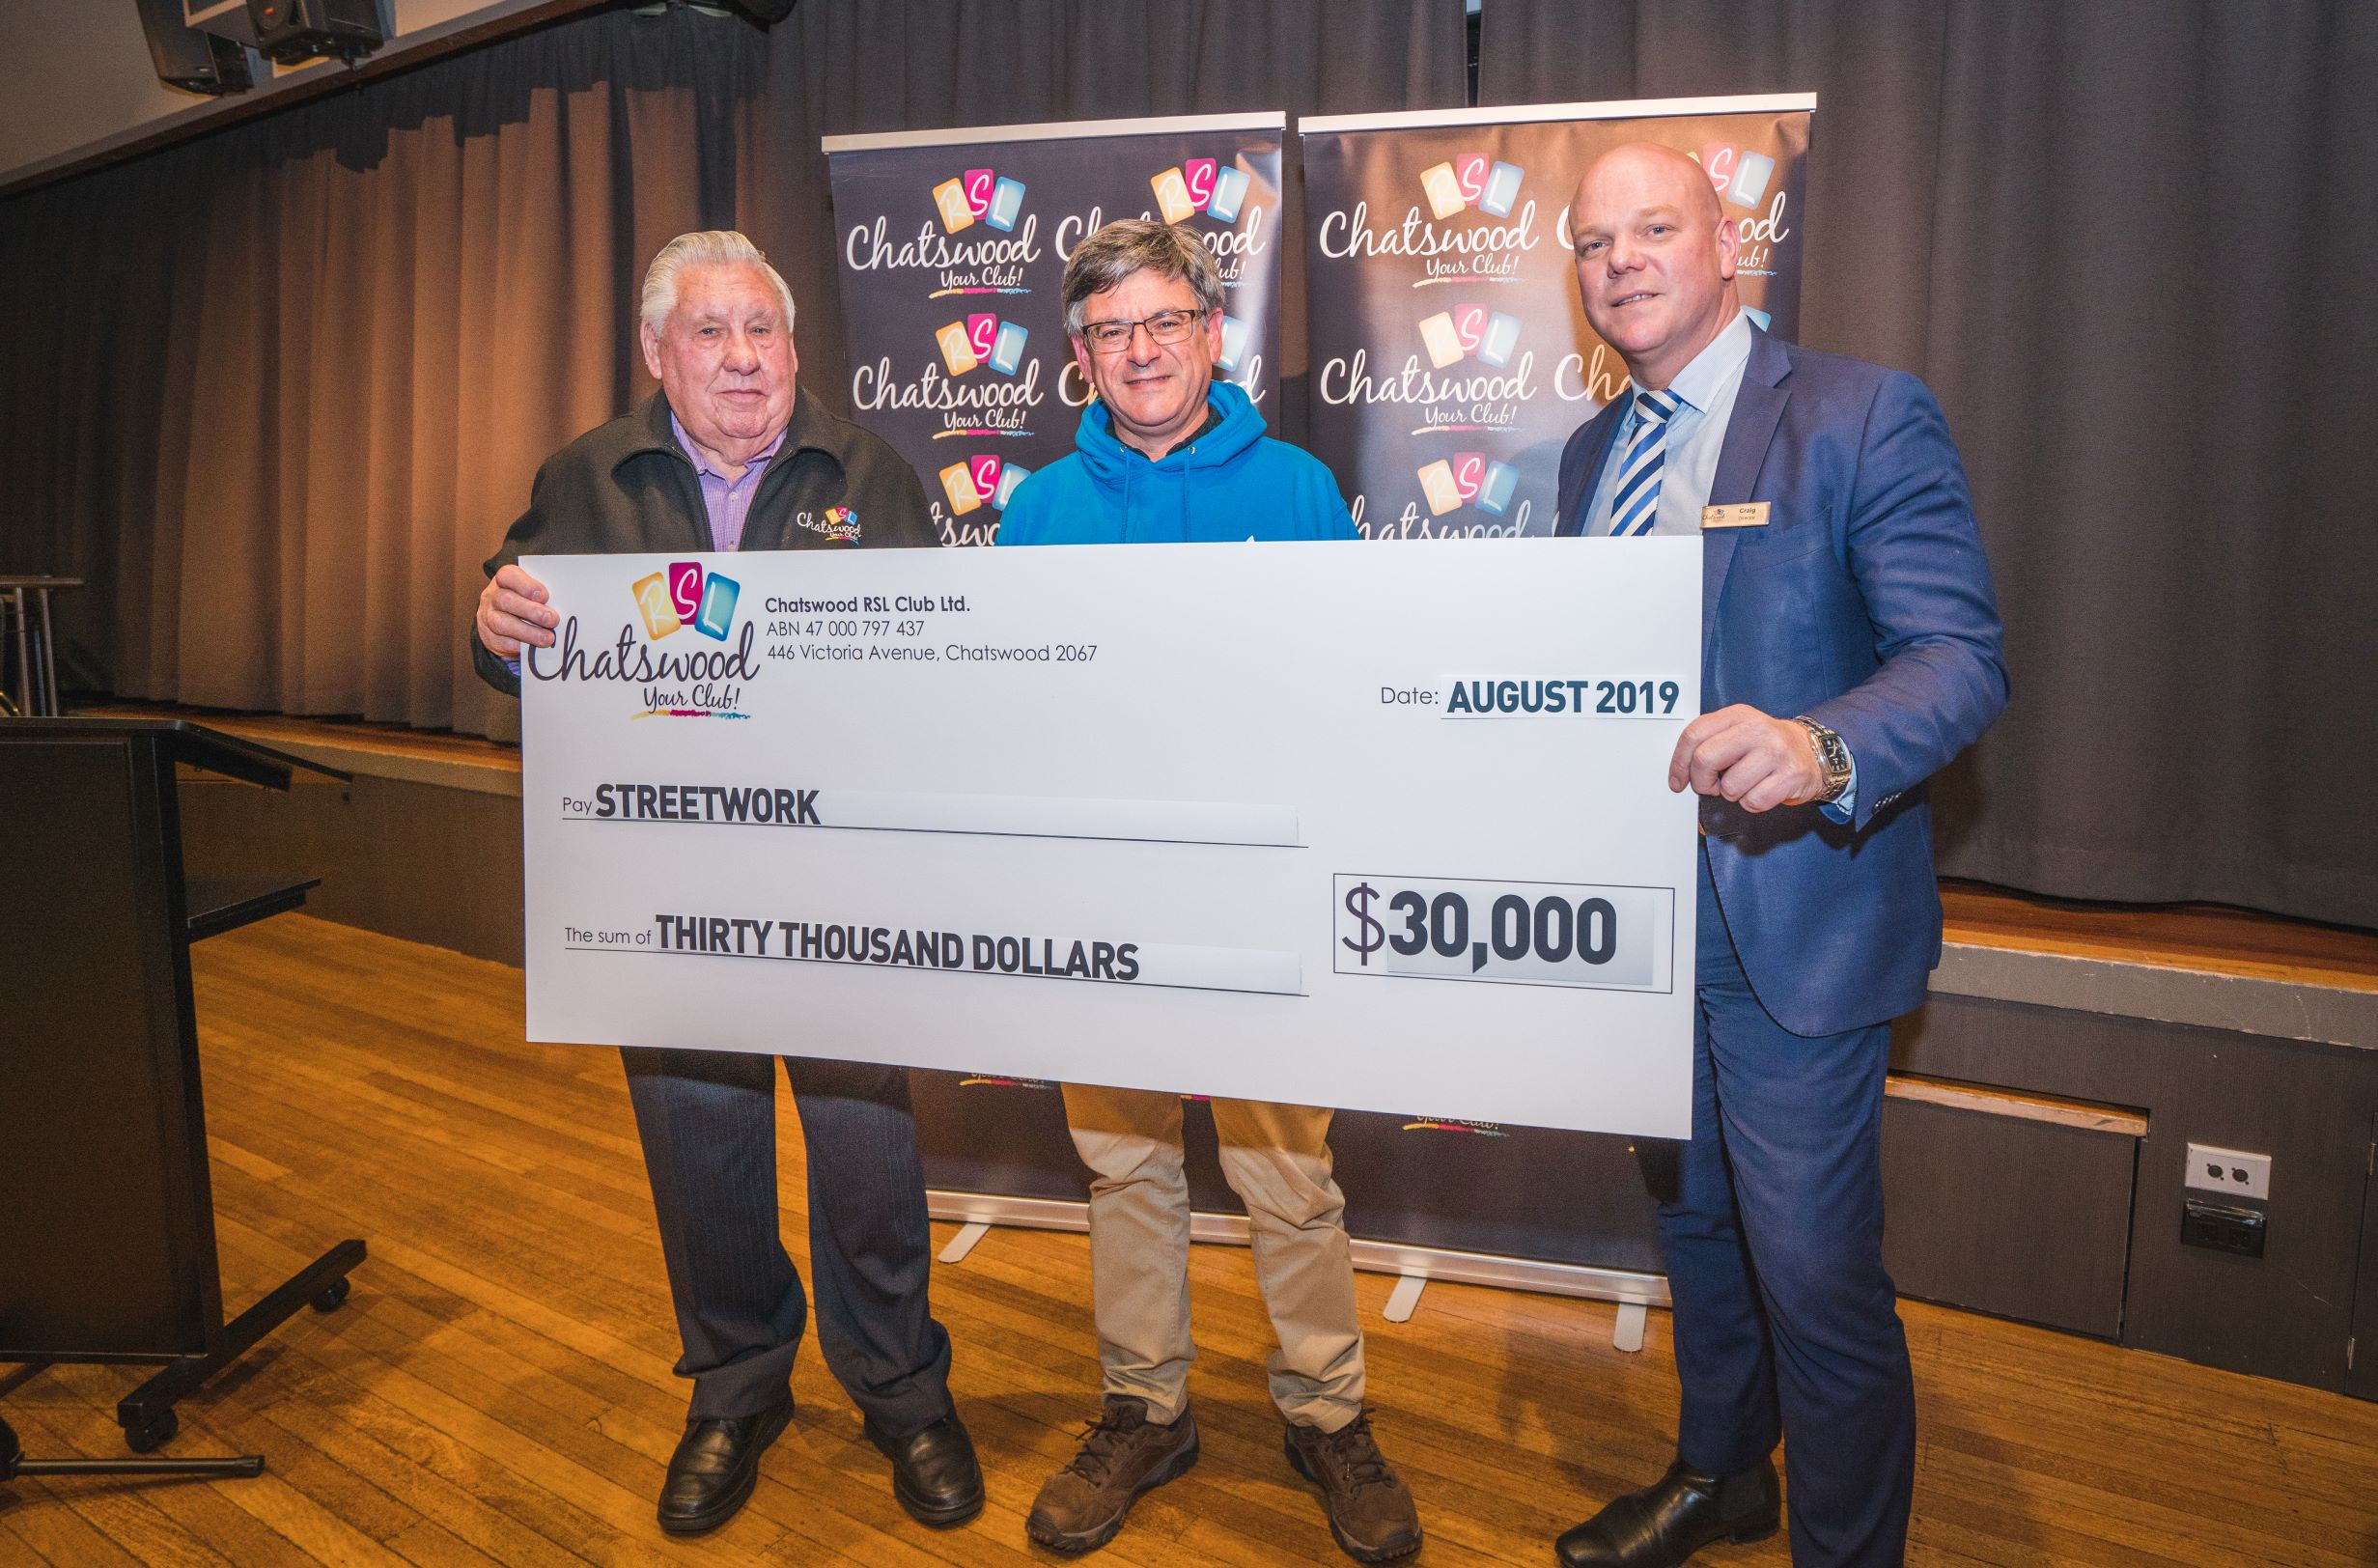 Chatswood RSL cheque presentation August 2019 .jpg